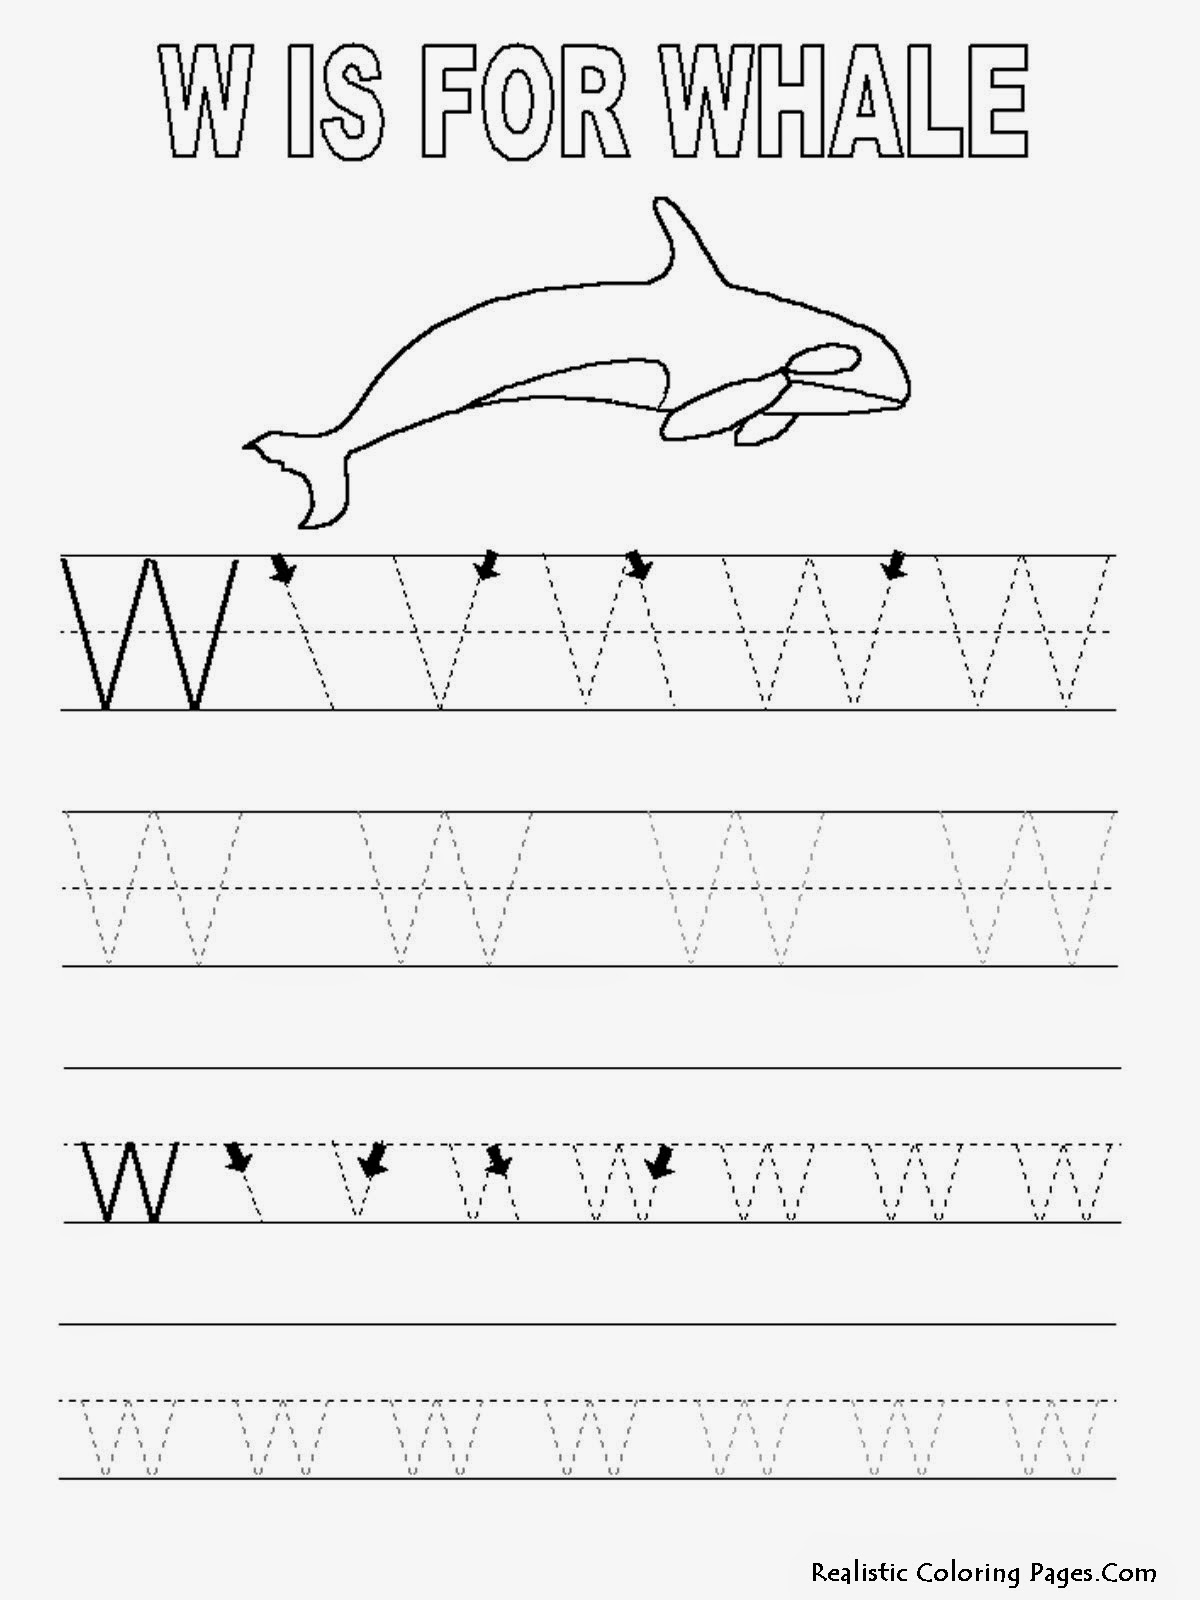 letter tracing pages w letters alphabet coloring sheet realistic coloring pages 23280 | Alphabet Tracer Pages W Whale